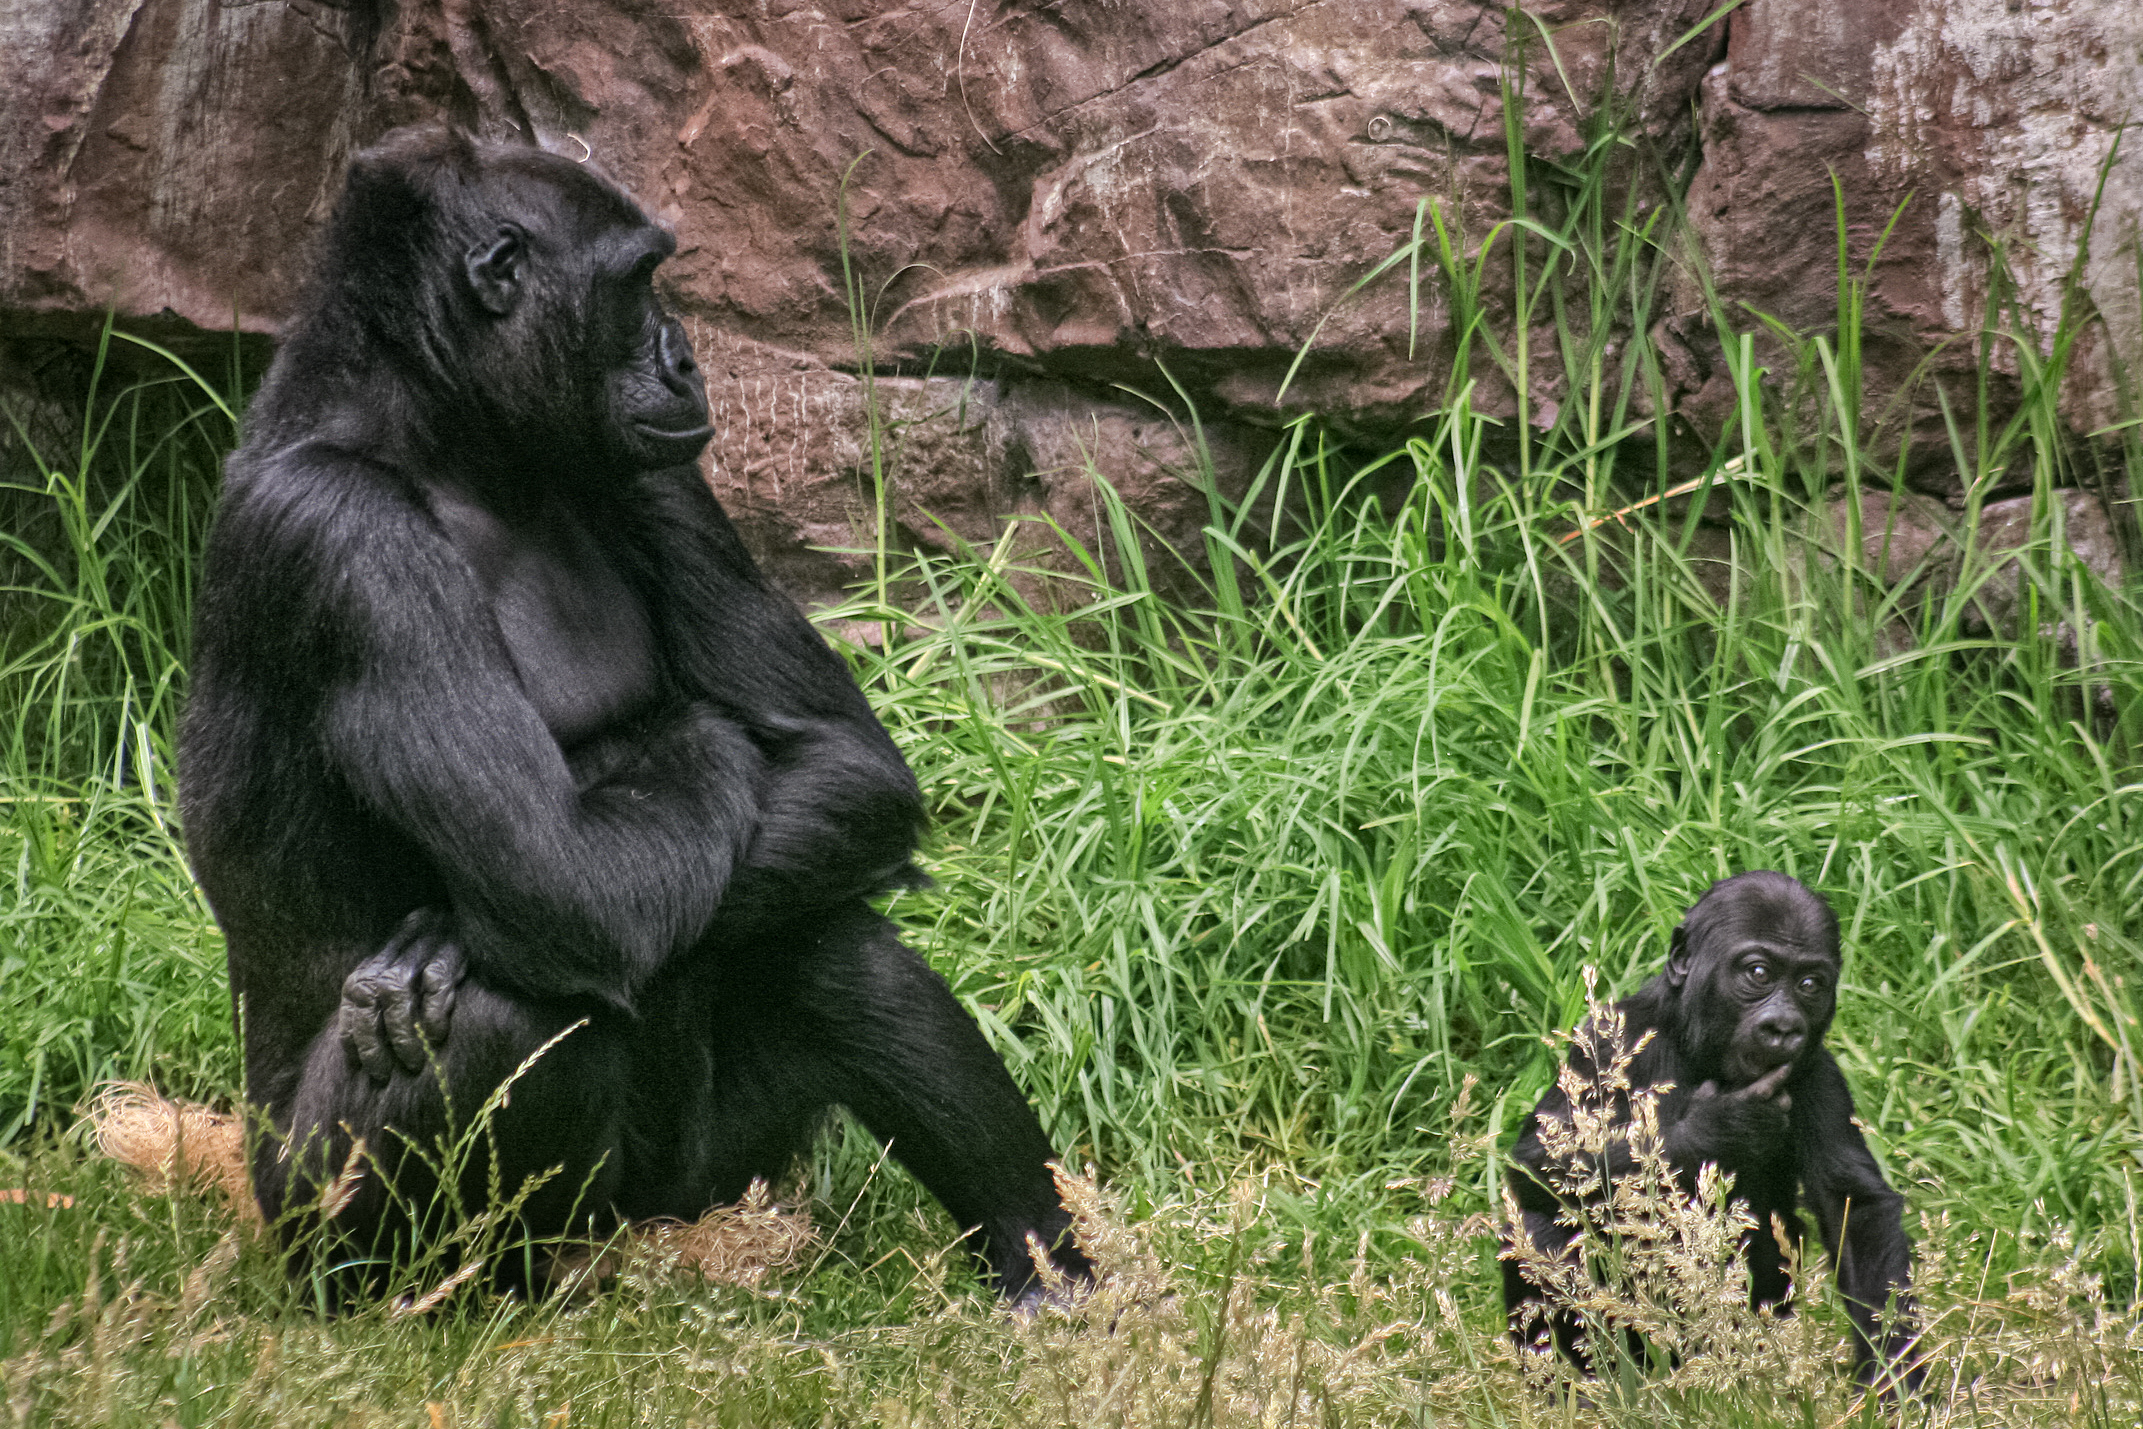 Female Gorilla with 8 Months Old Offspring in Zoo